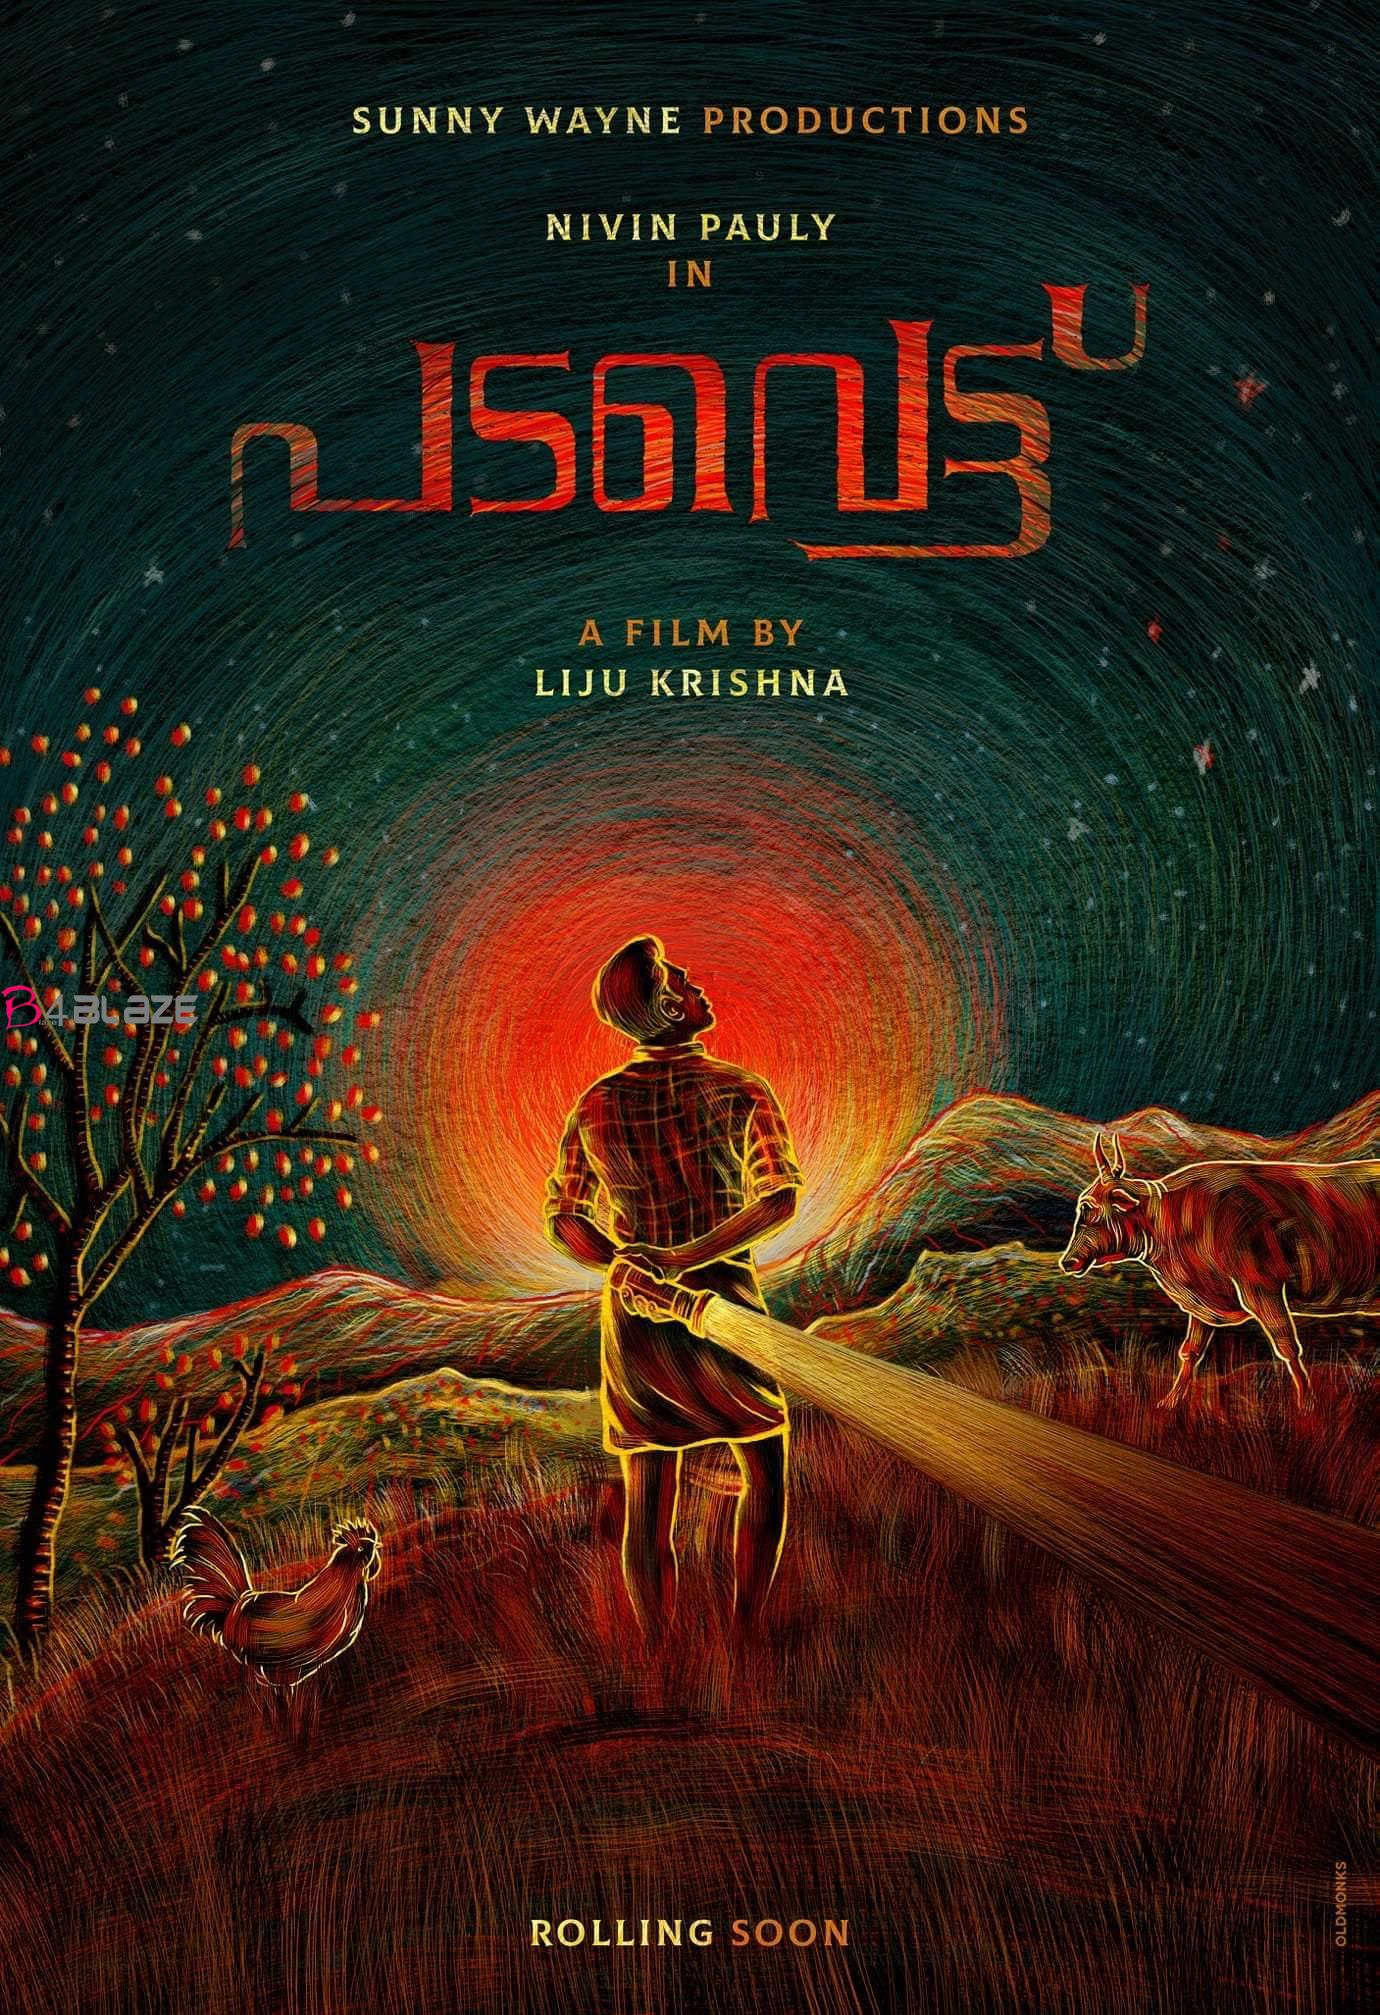 nivin pauly new movie